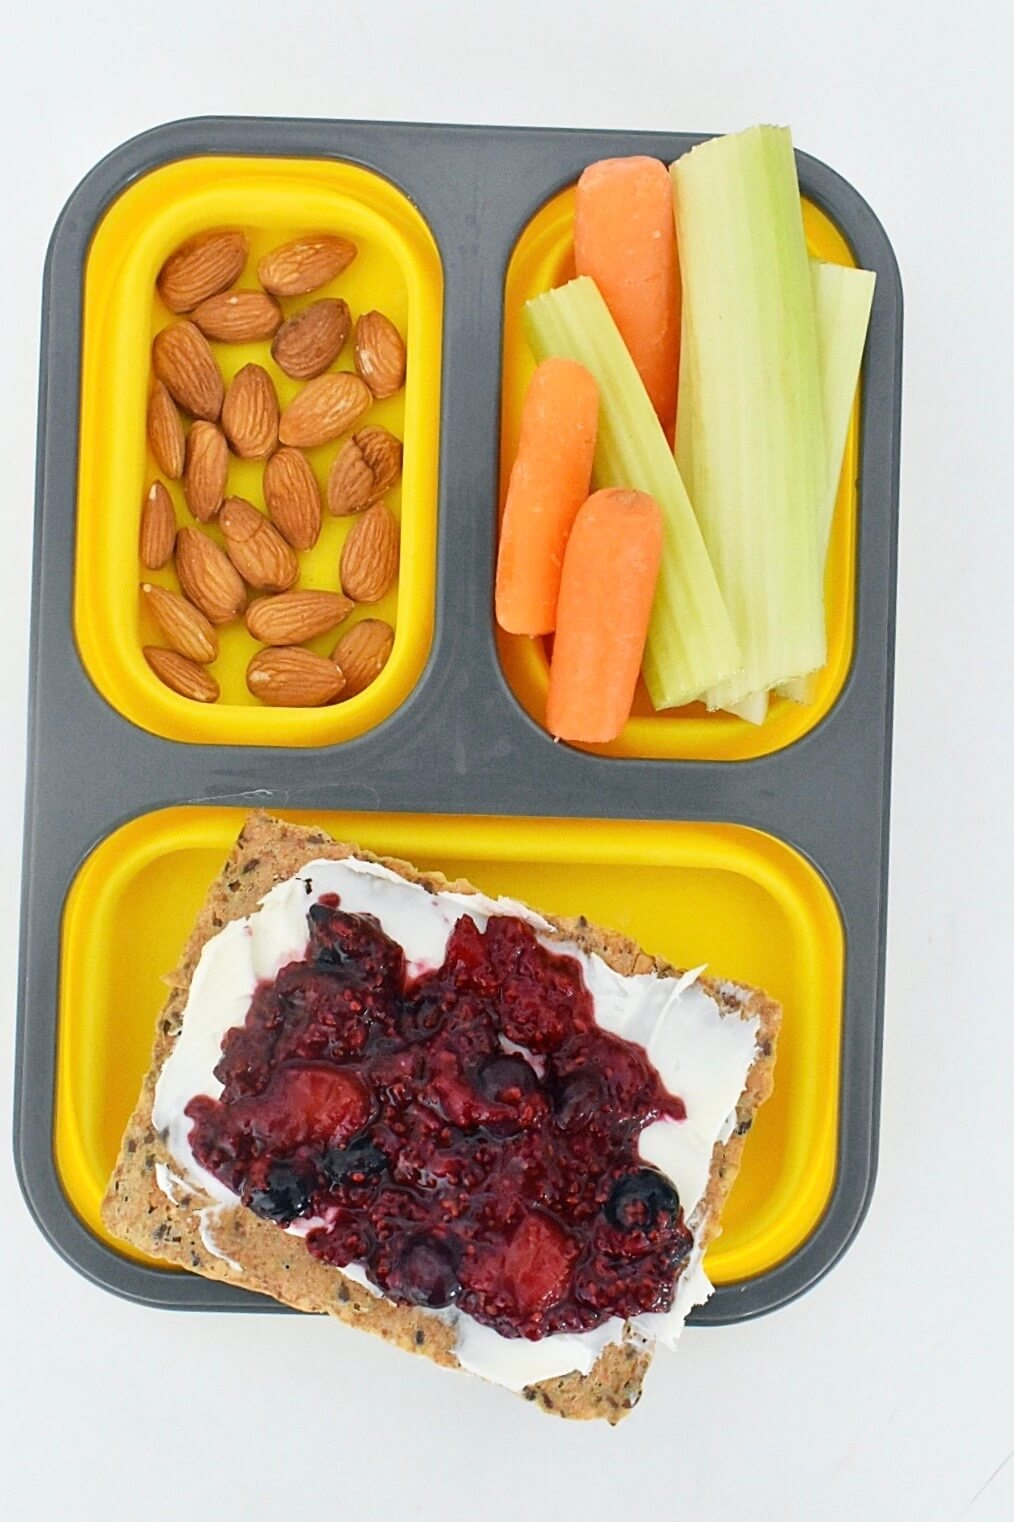 yellow bento box with almonds, carrots, celery sticks and mixed berry chia jam and mascarpone cheese on crispbread